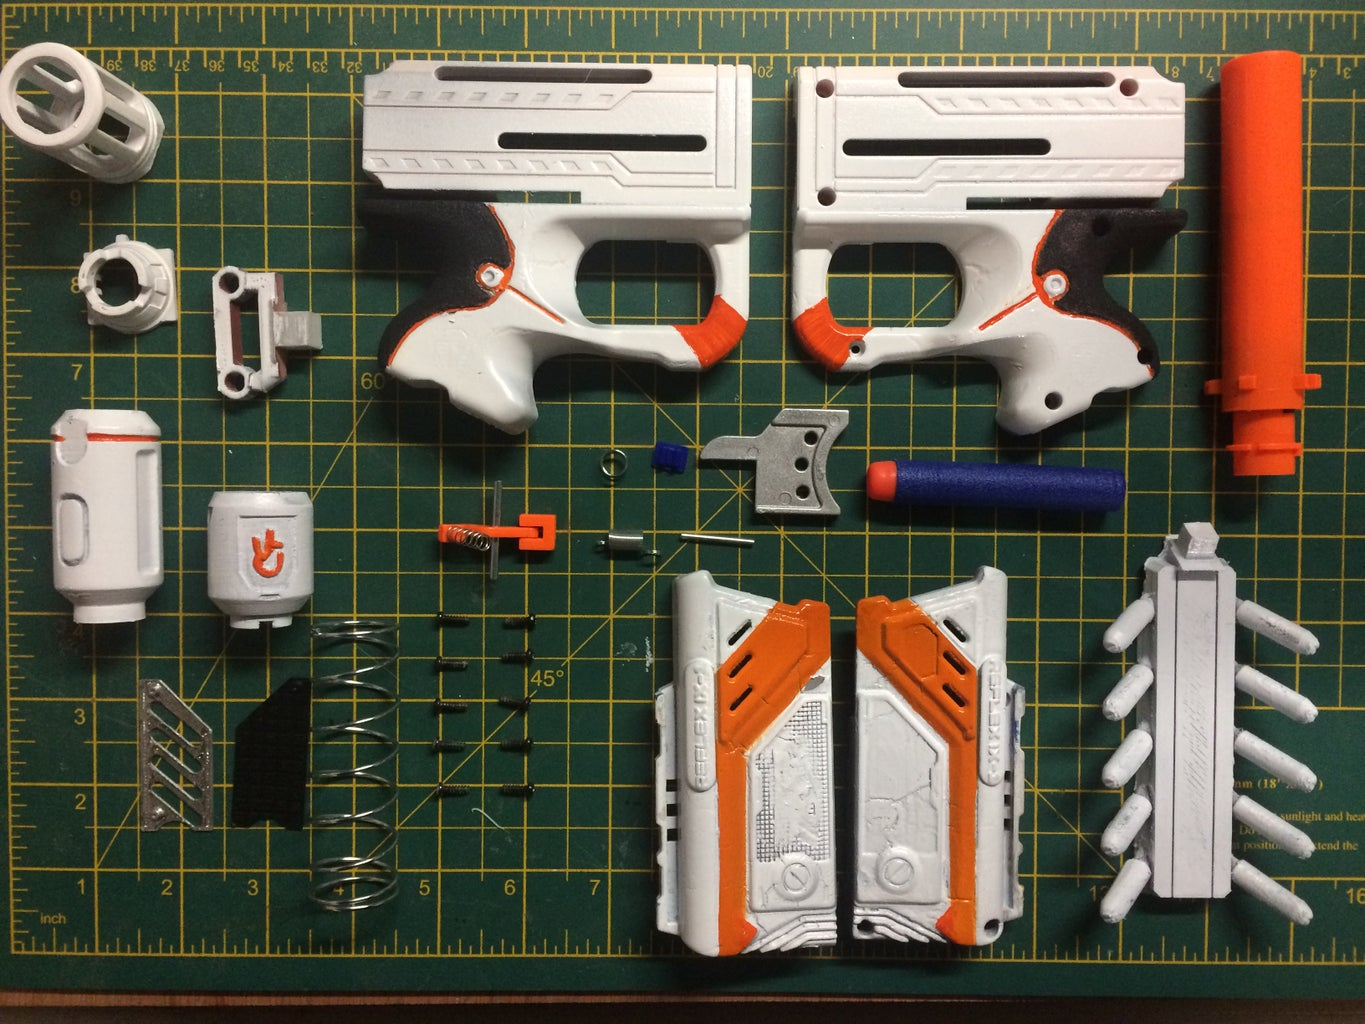 DISTRICT 9 Inspired NERF Remake